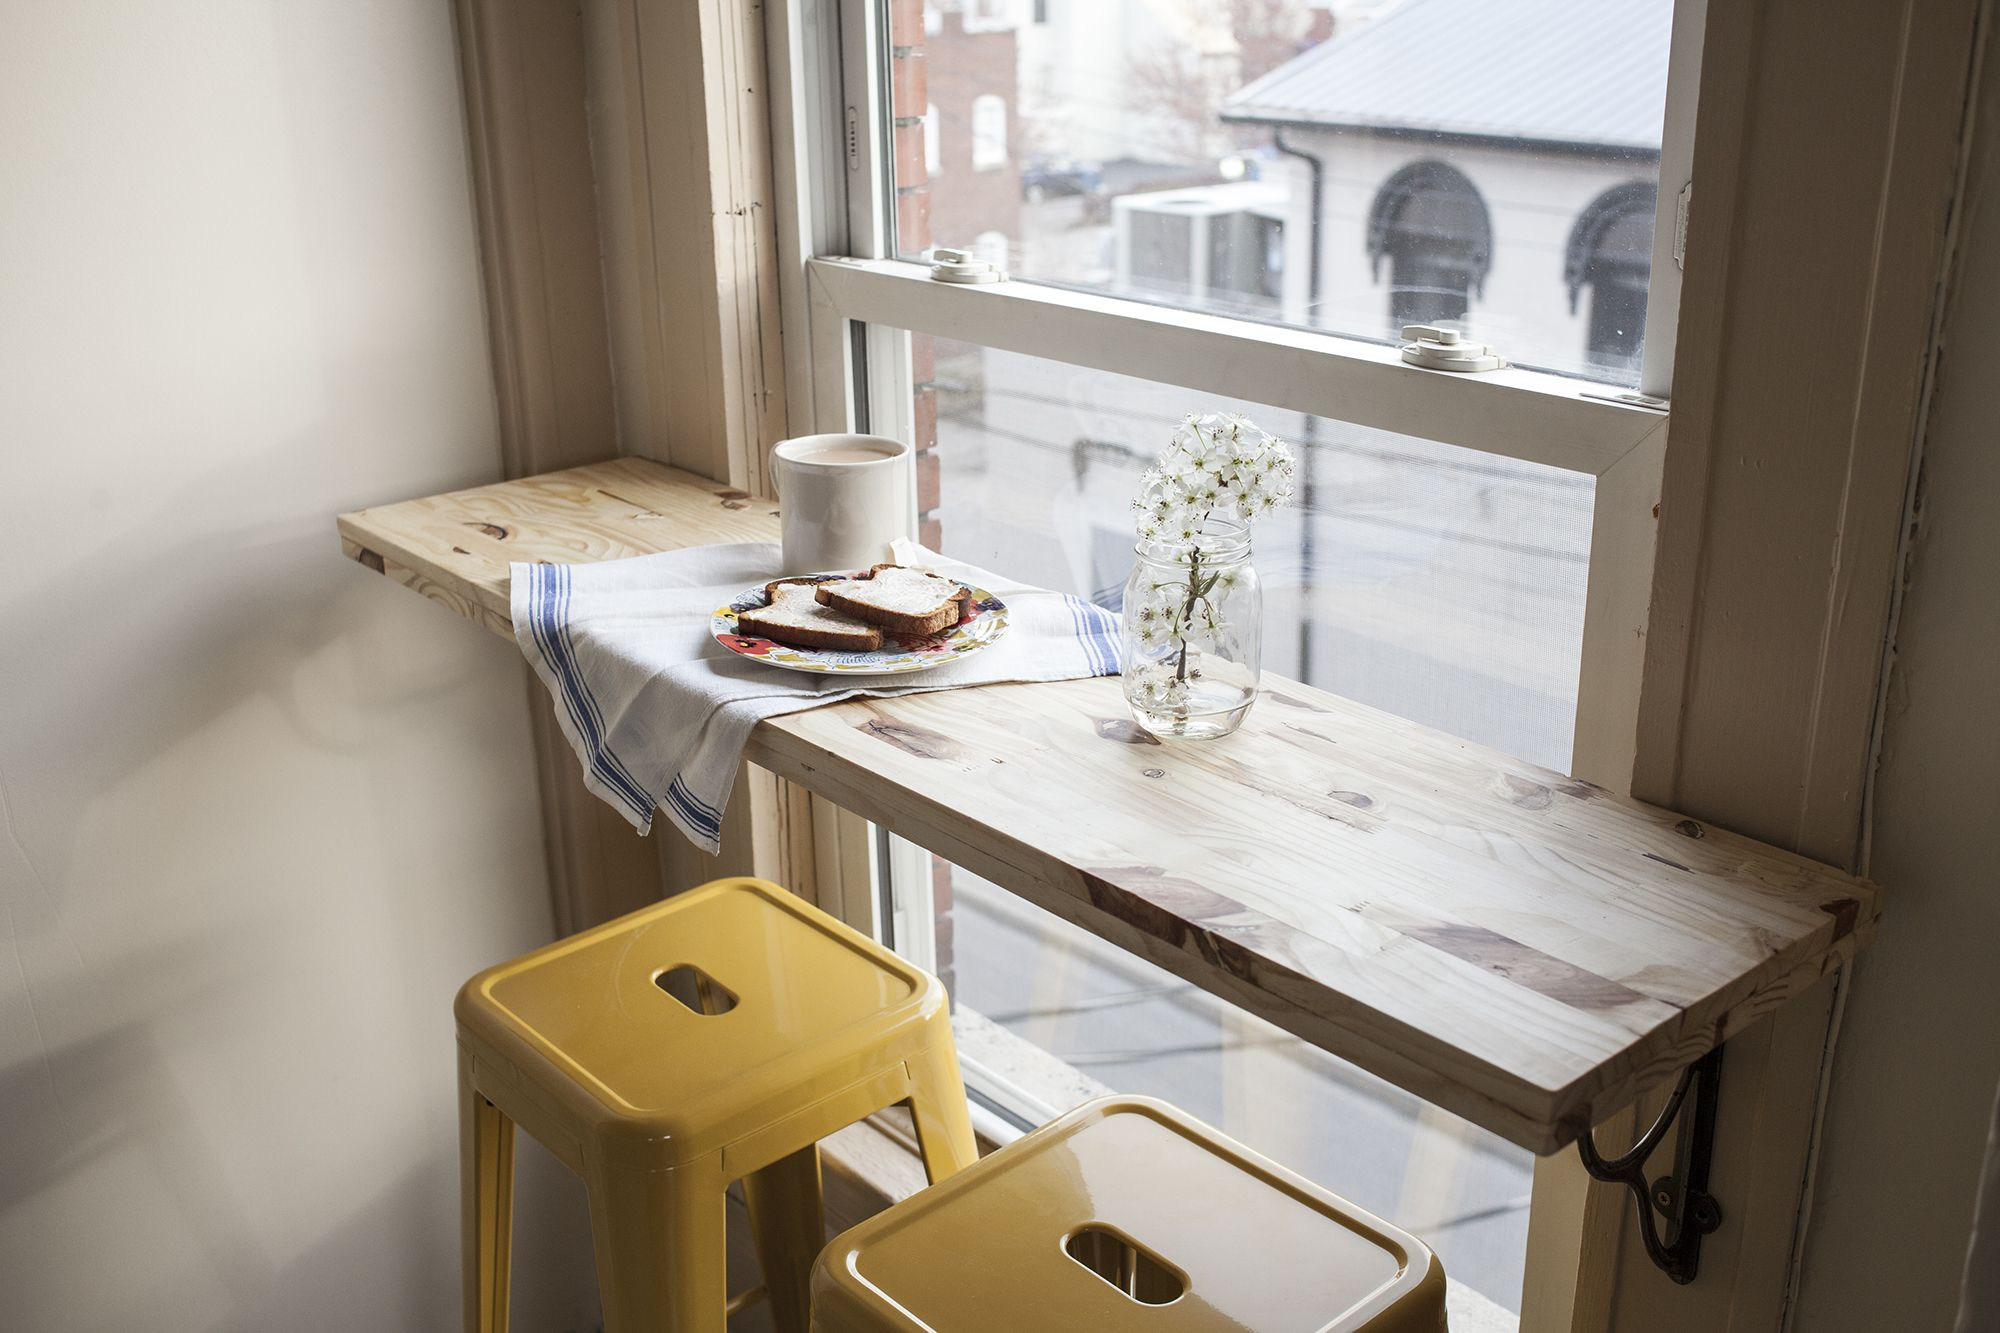 7 Genius Ways to Design a Small Space | Small spaces, Cafes and Corner